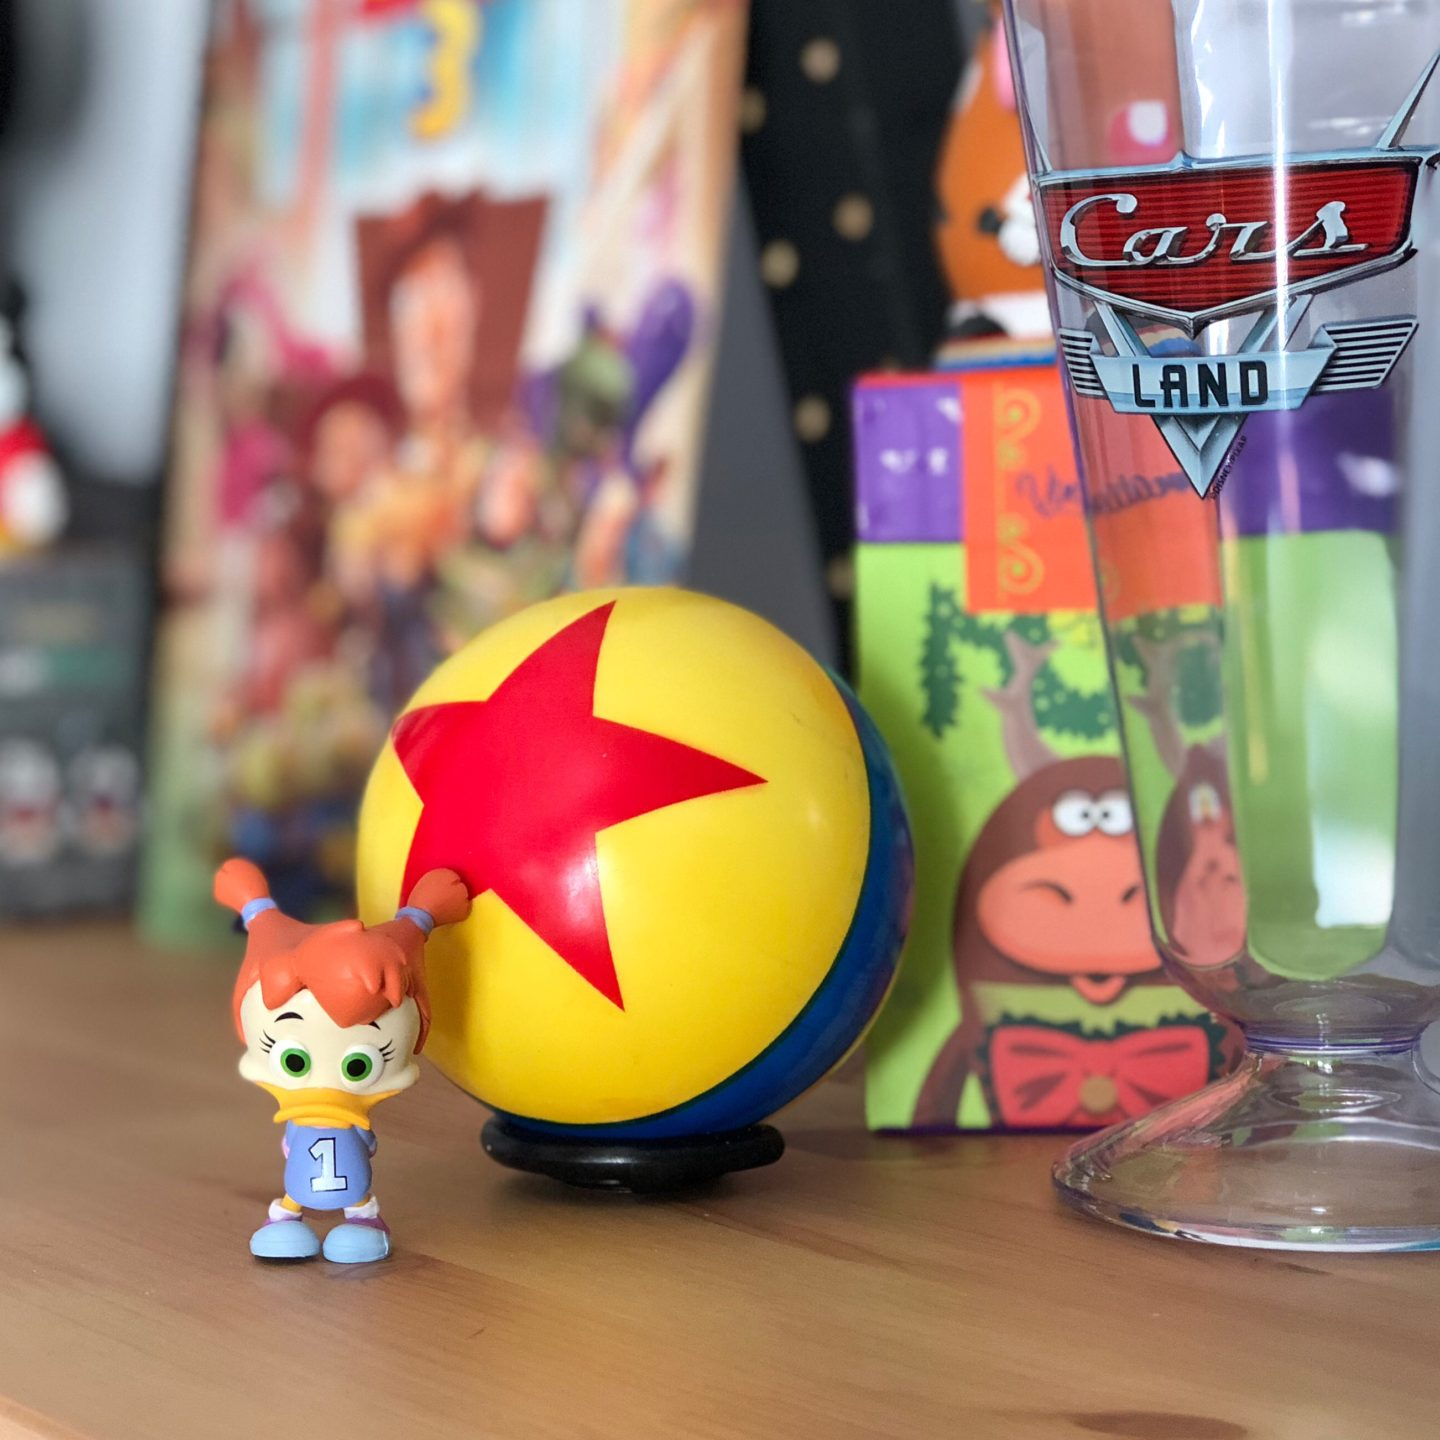 A figure of Gosalyn from Darkwing Duck is sat on a shelf surrounded by items like a Luxo Ball and Pixar Cars merchandise